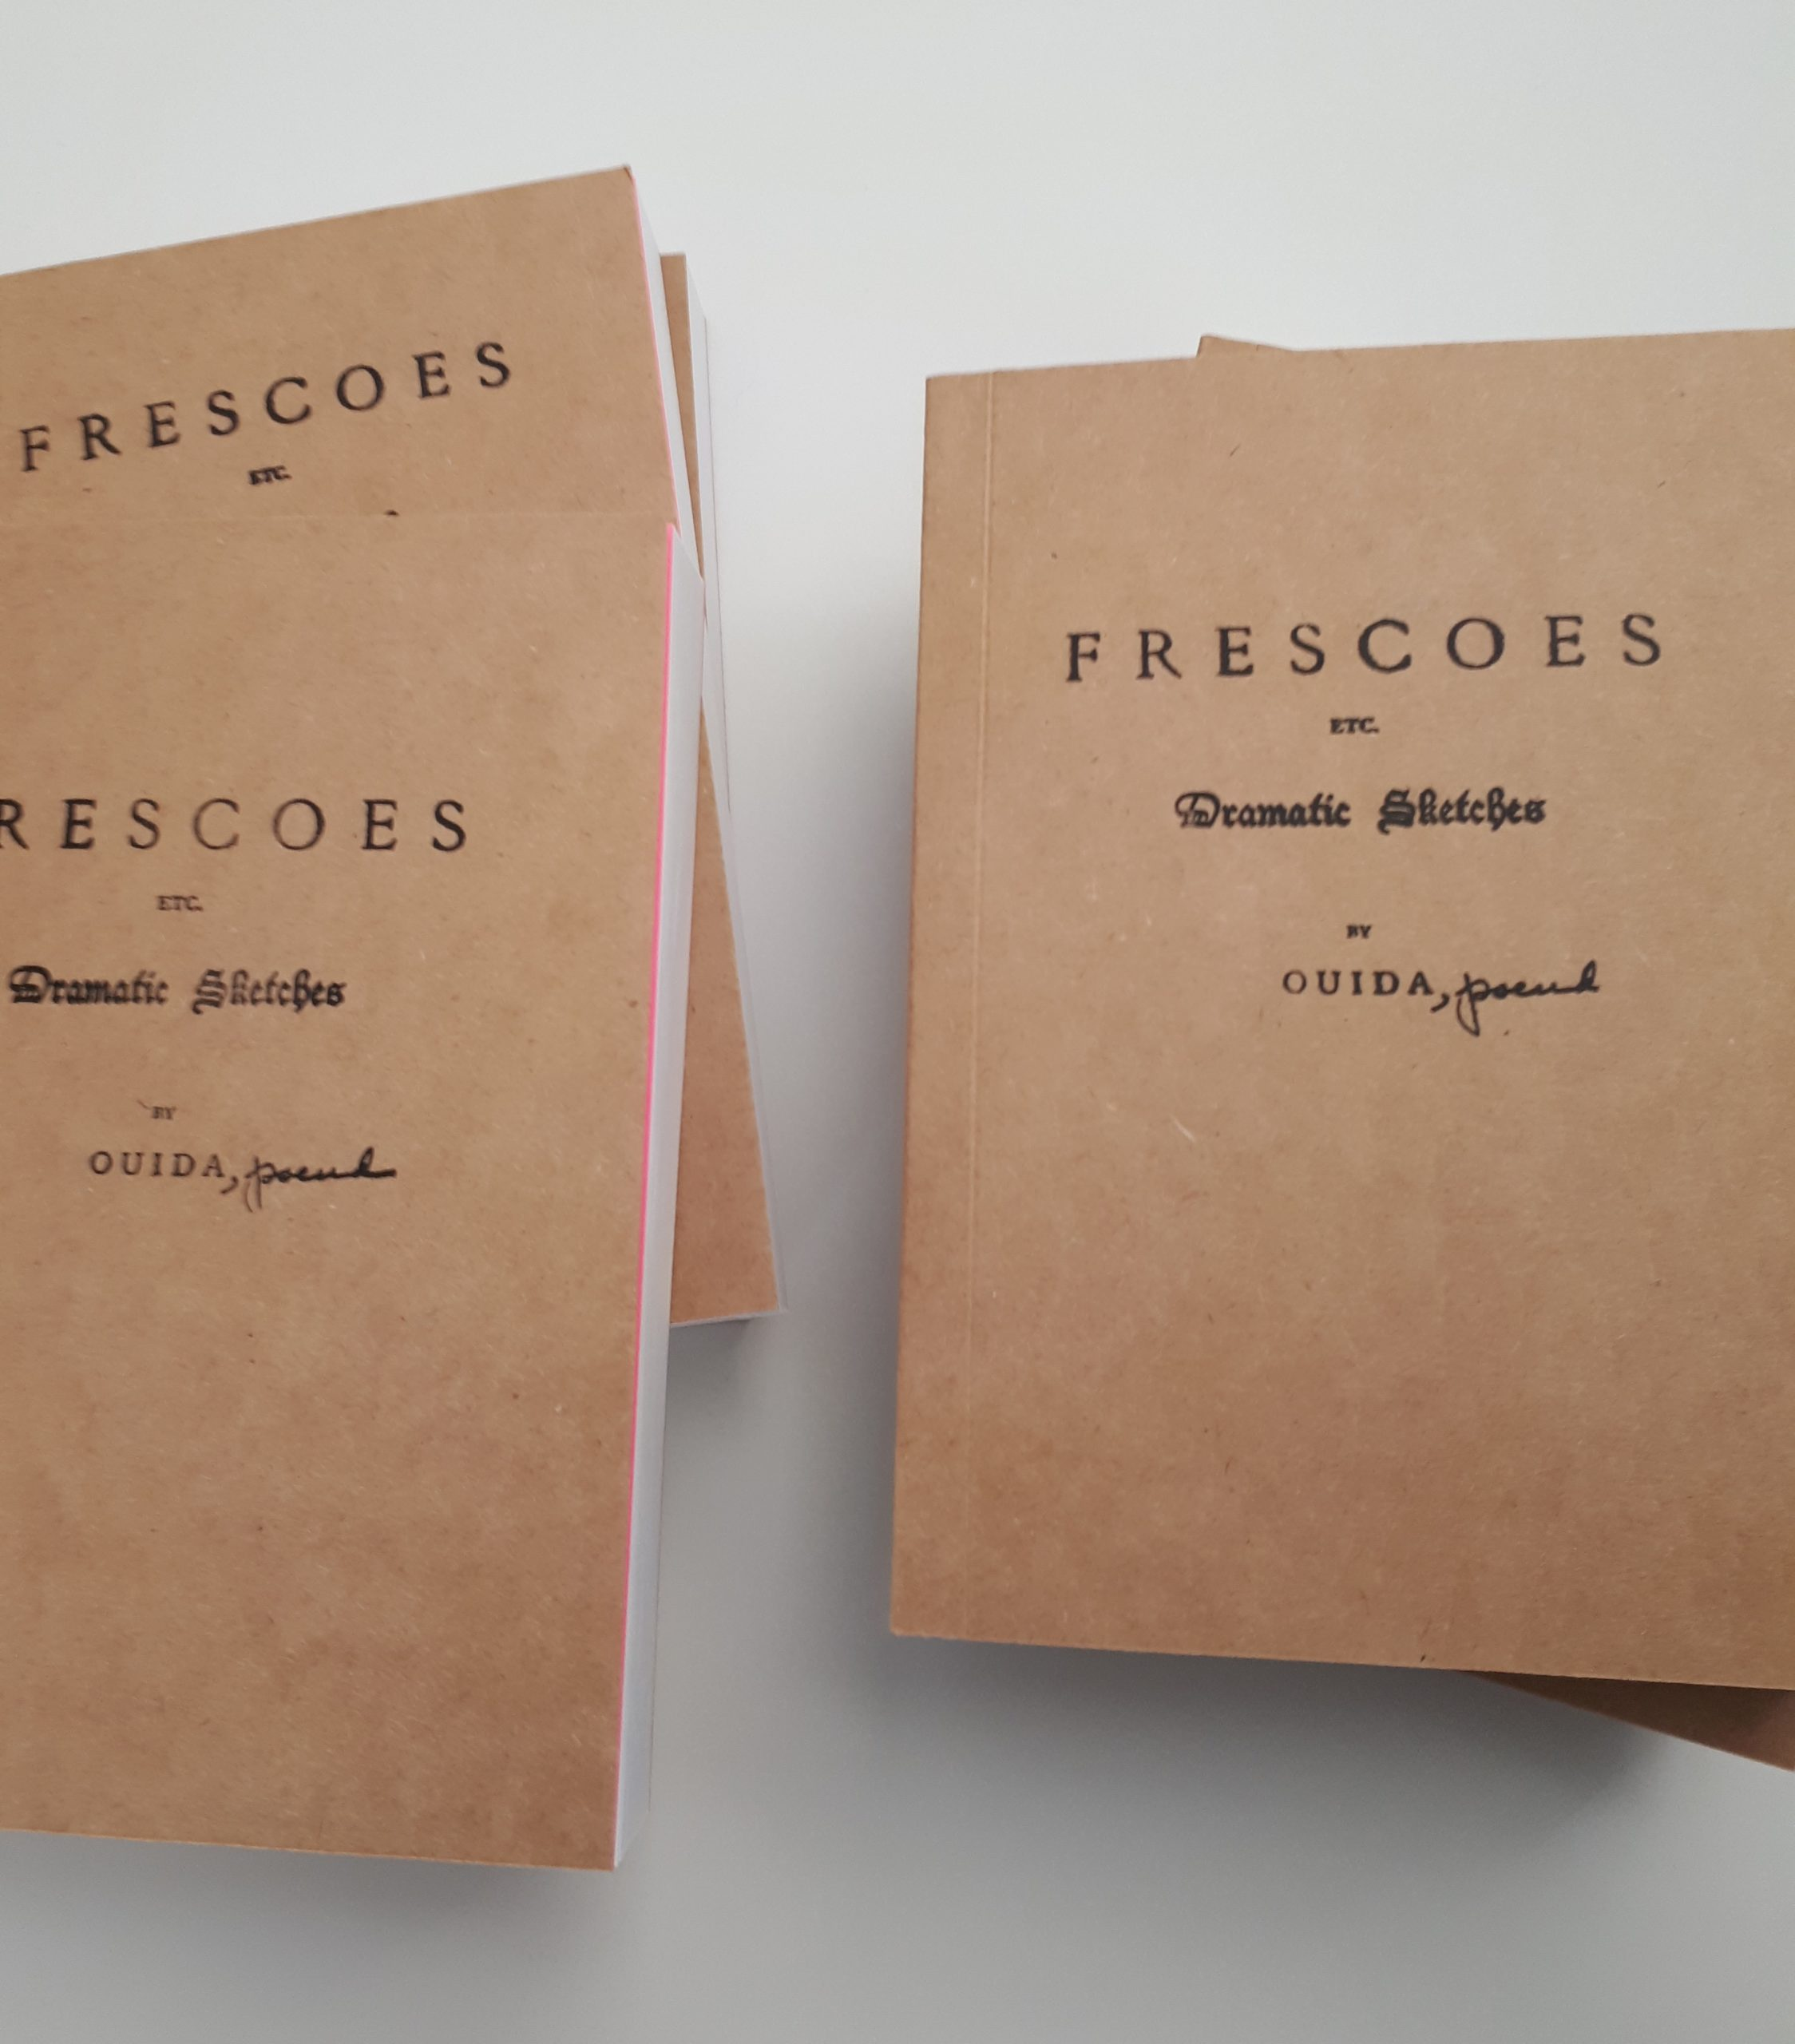 "books with covers made of rough chipboard paper, showing cover title ""FRESCOES etc. Dramatic Sketched by OUIDA"" with the work ""pseud."" written in cursive next to the name ""OUDIA"". On one of the books can be seen a glimpse of a vibrant pink paper inside the front cover before the book's actual pages."